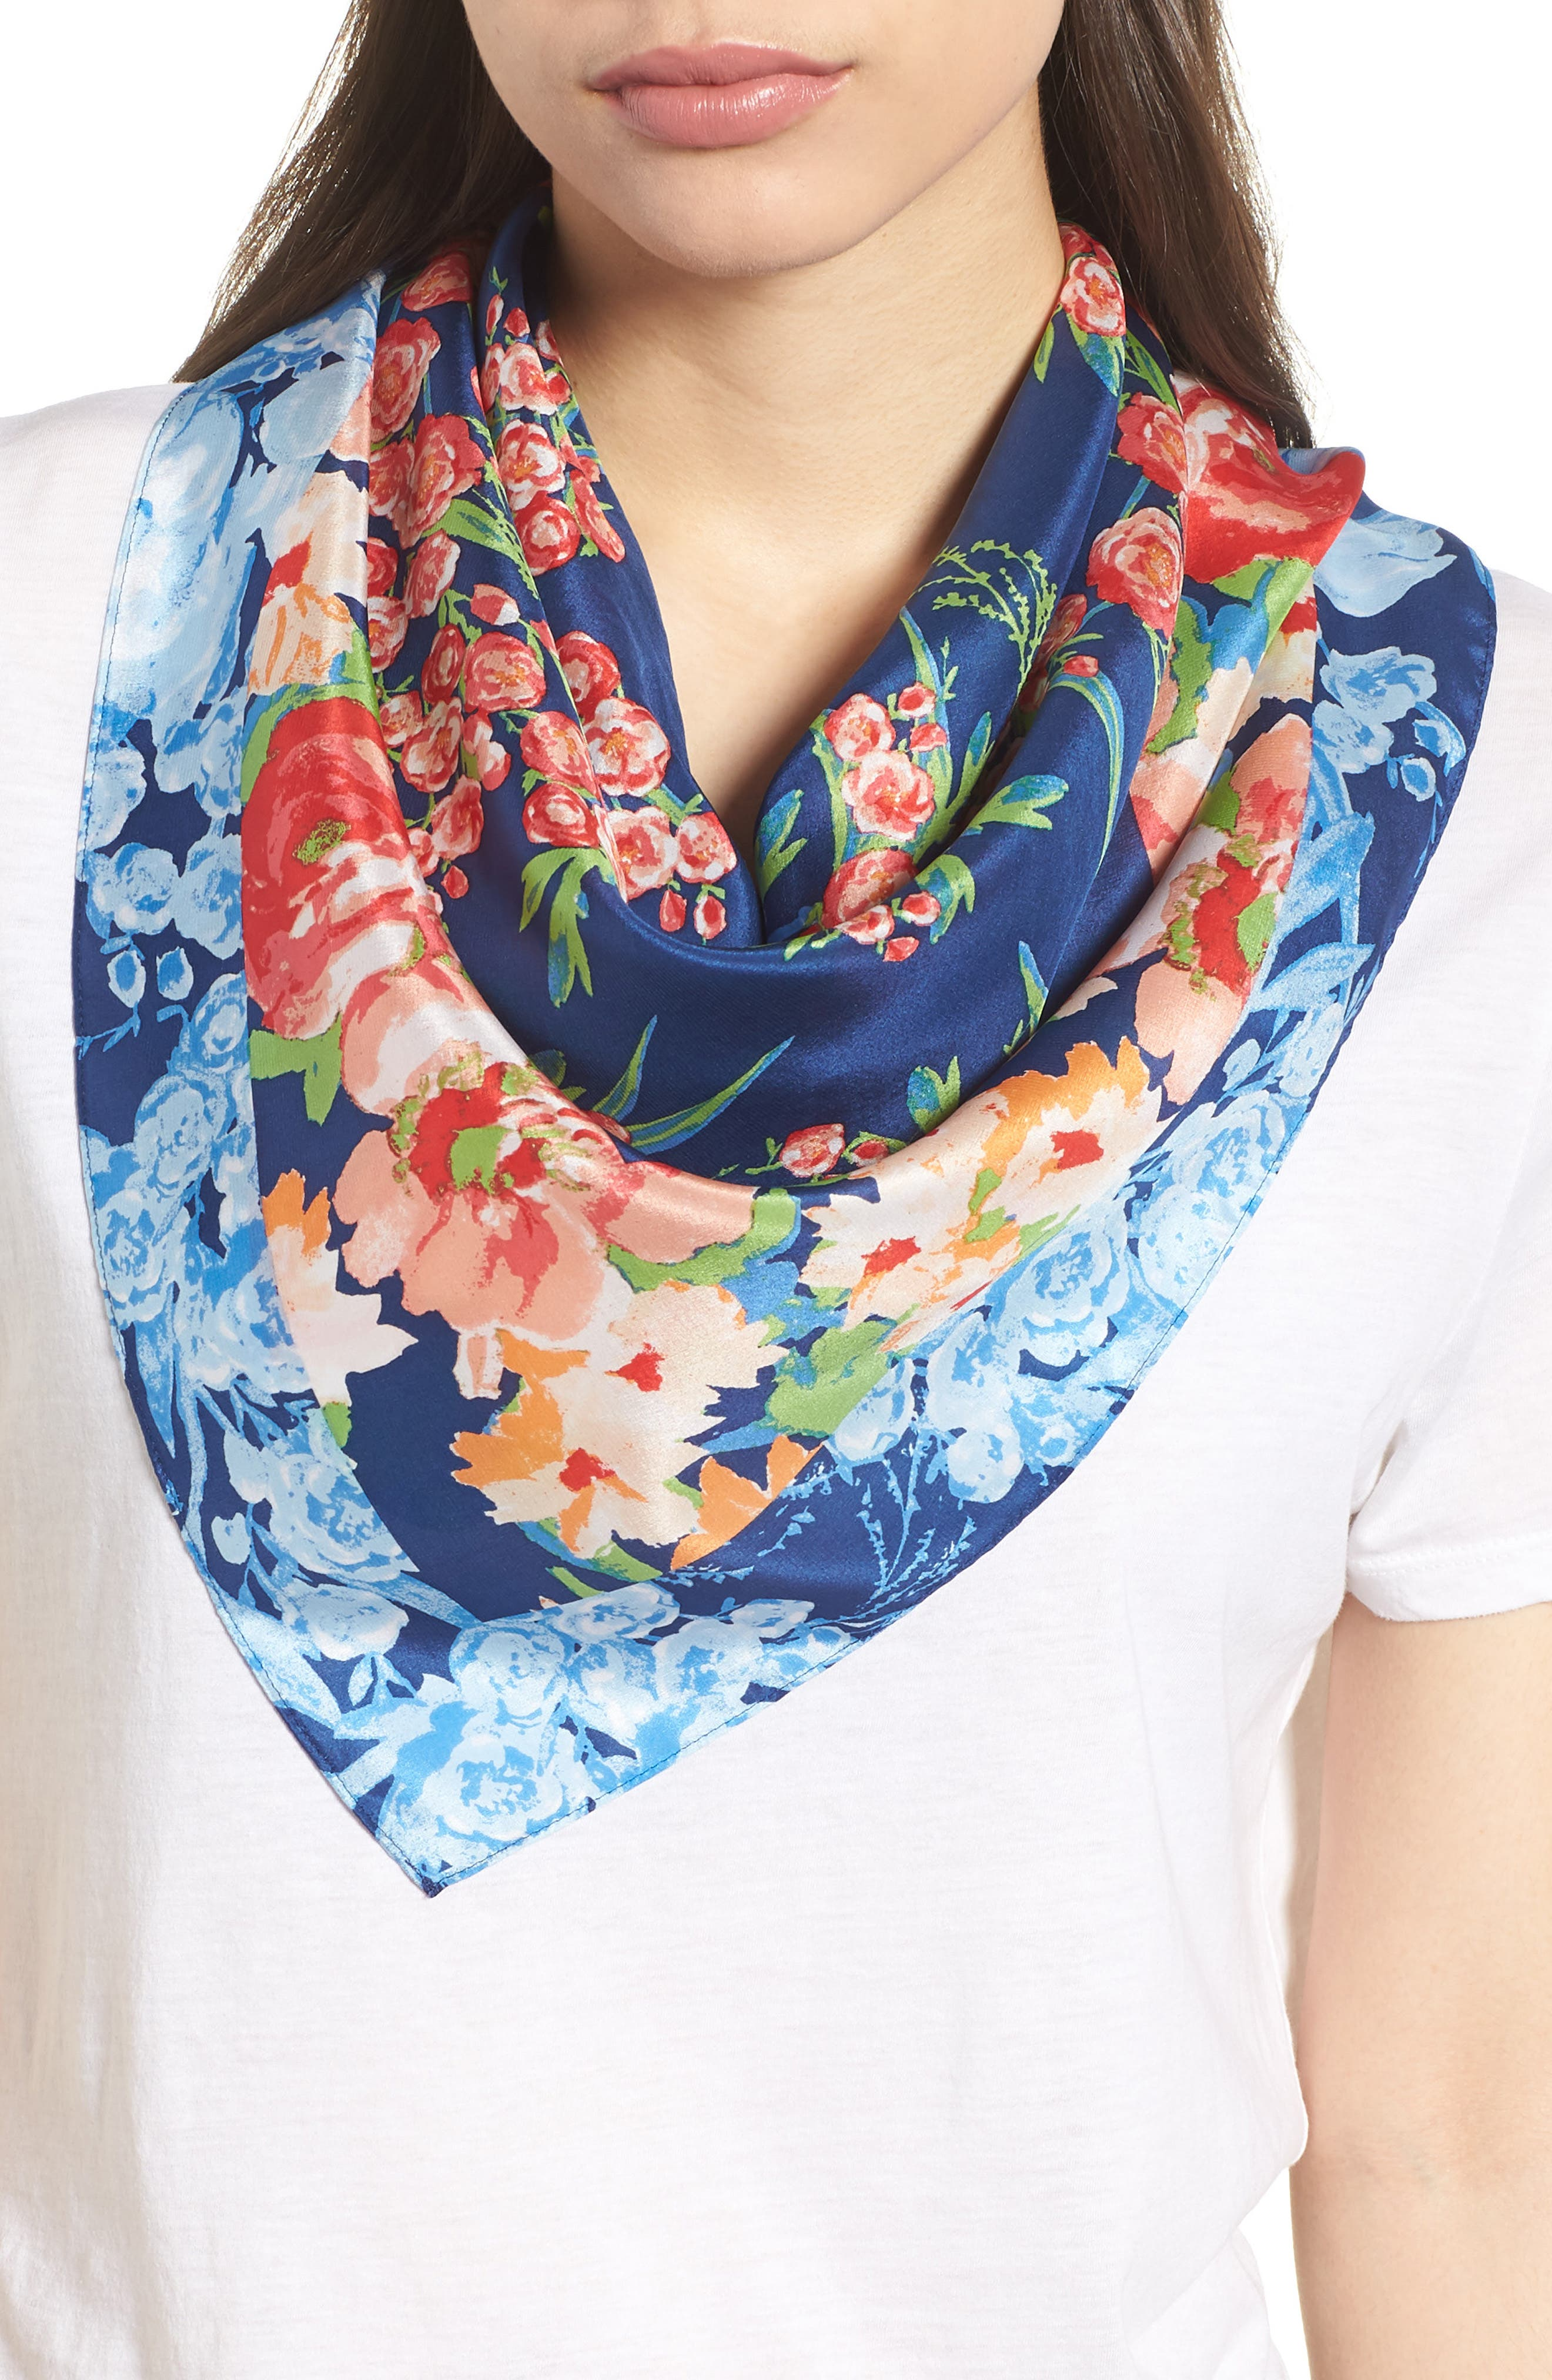 Airlie Beach Floral Silk Square Scarf,                         Main,                         color, NAVY